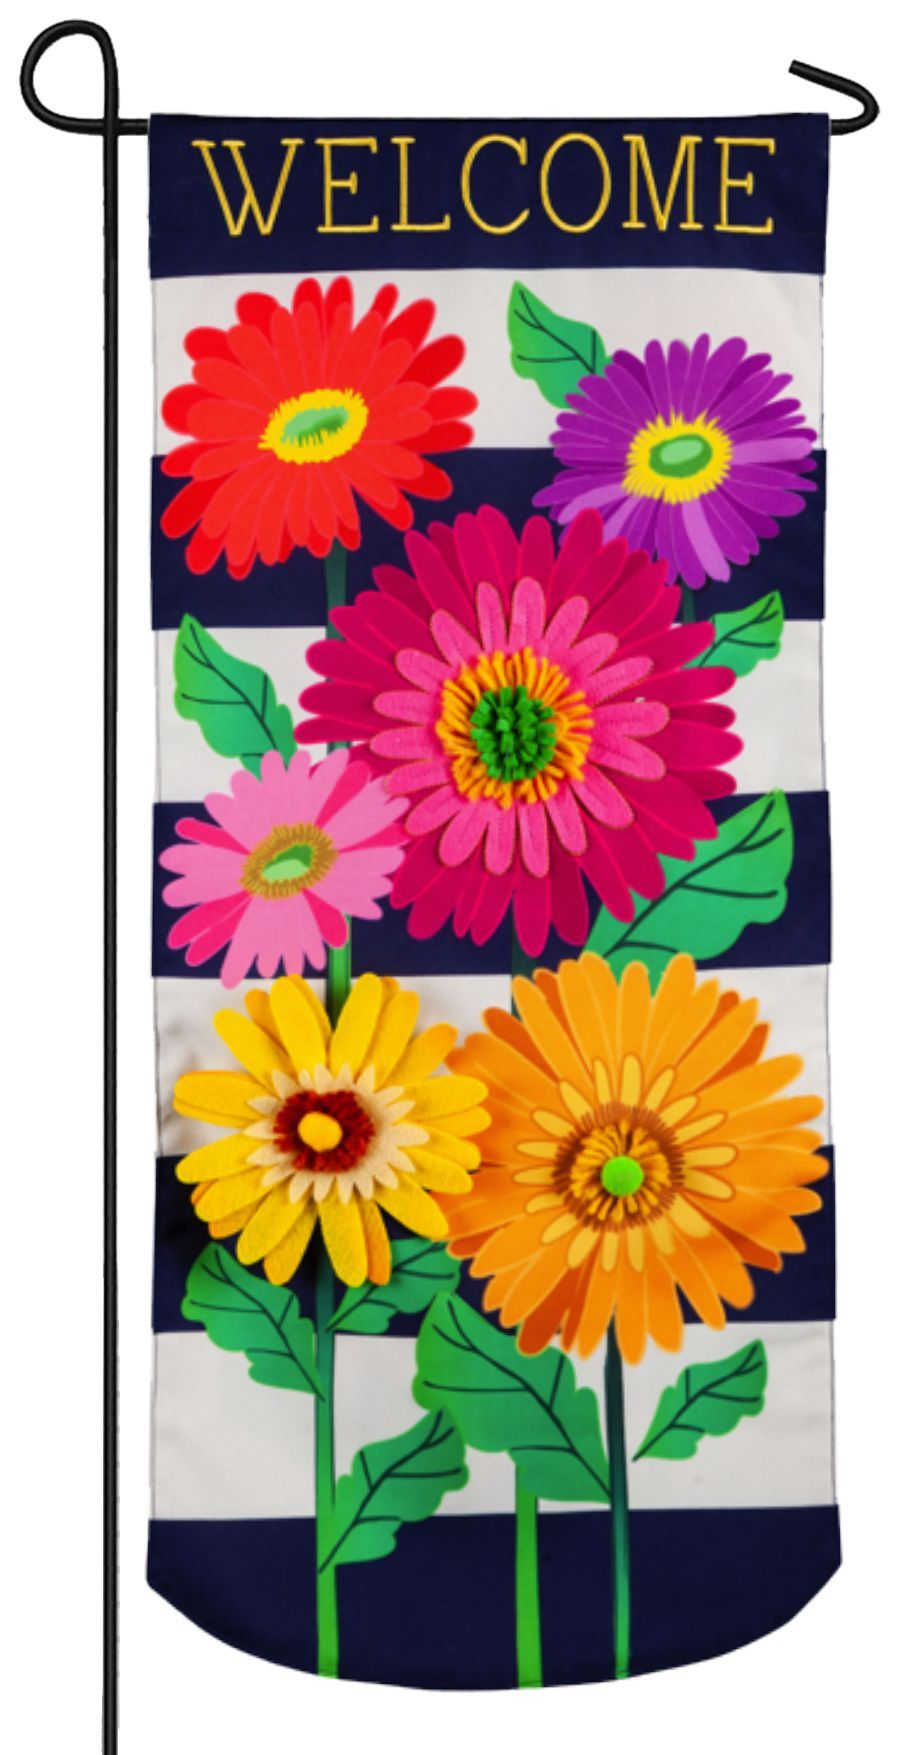 Linen Daisy Stripes Applique Garden Banner